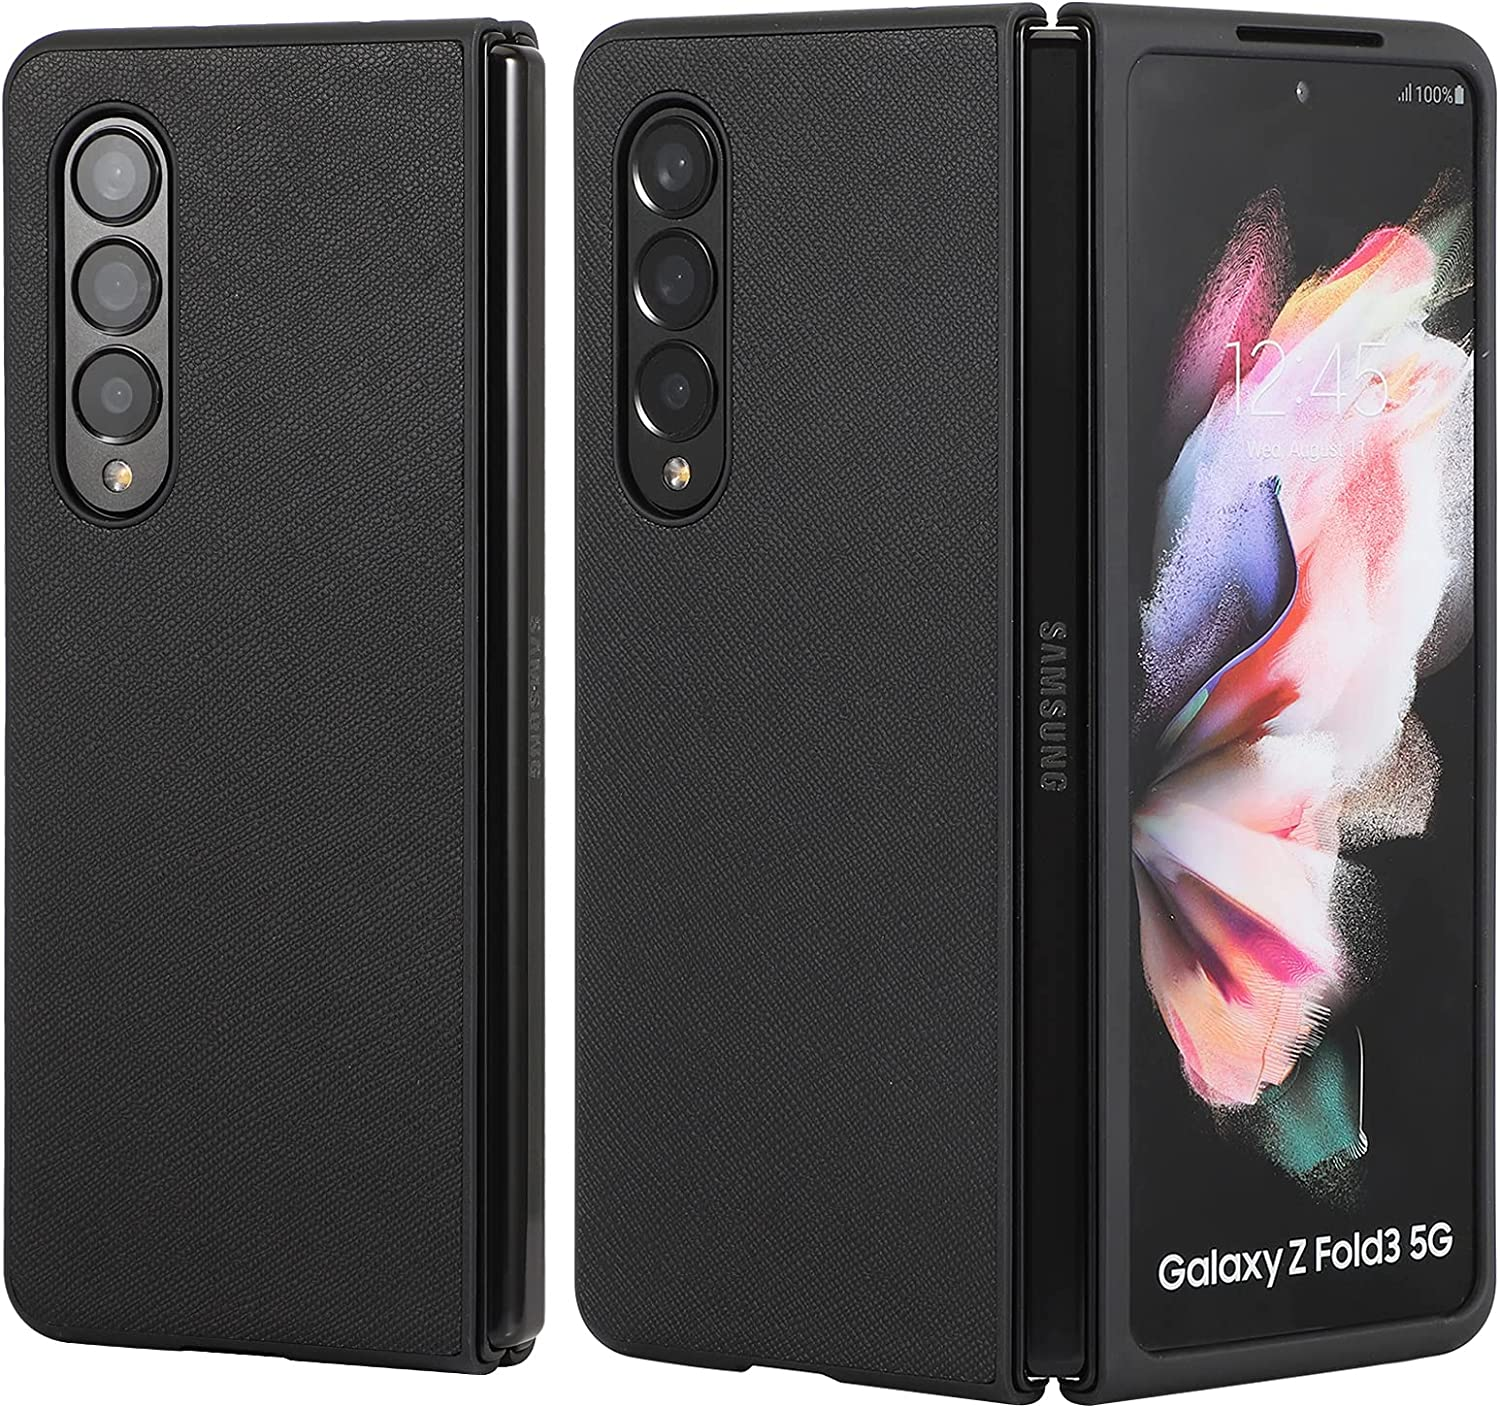 Designed for Samsung Galaxy Z Fold 3 Case, Phone Case for Galaxy Z Fold 3, Premium Leather+PC Protective Phone Cover Compatible with Z Fold 3 5G (2021)